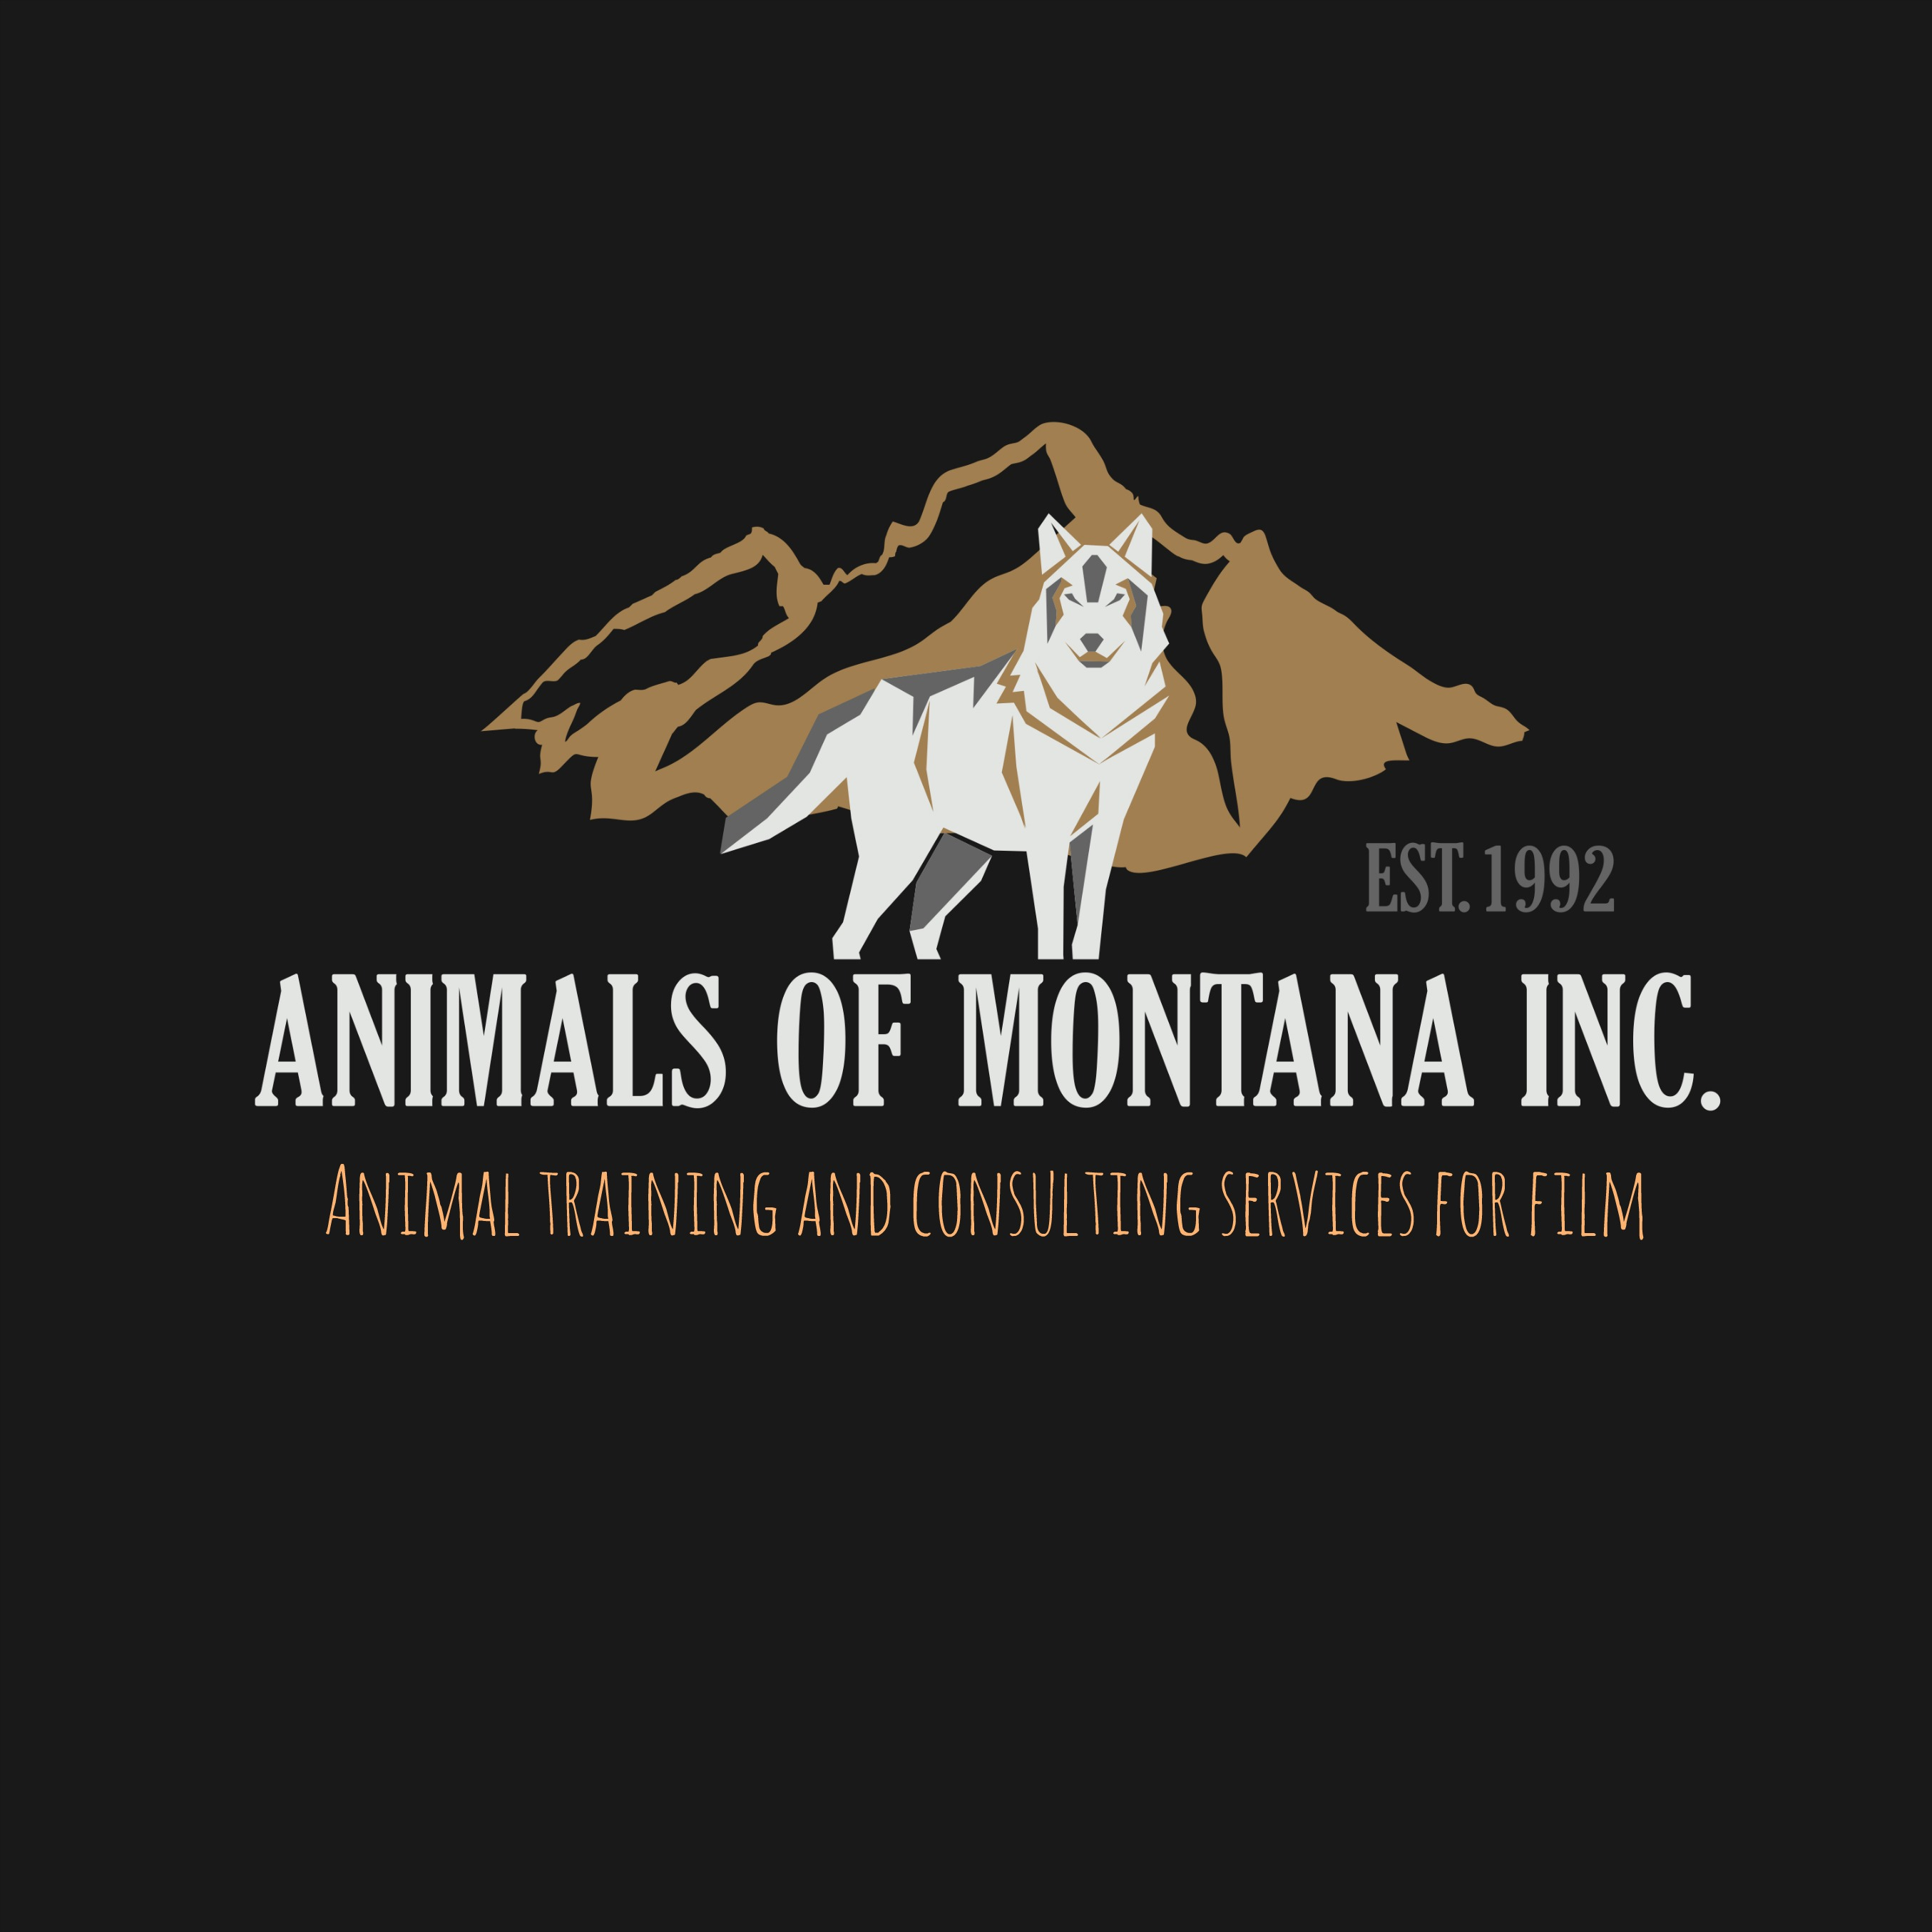 Animals of Montana Inc. Logo